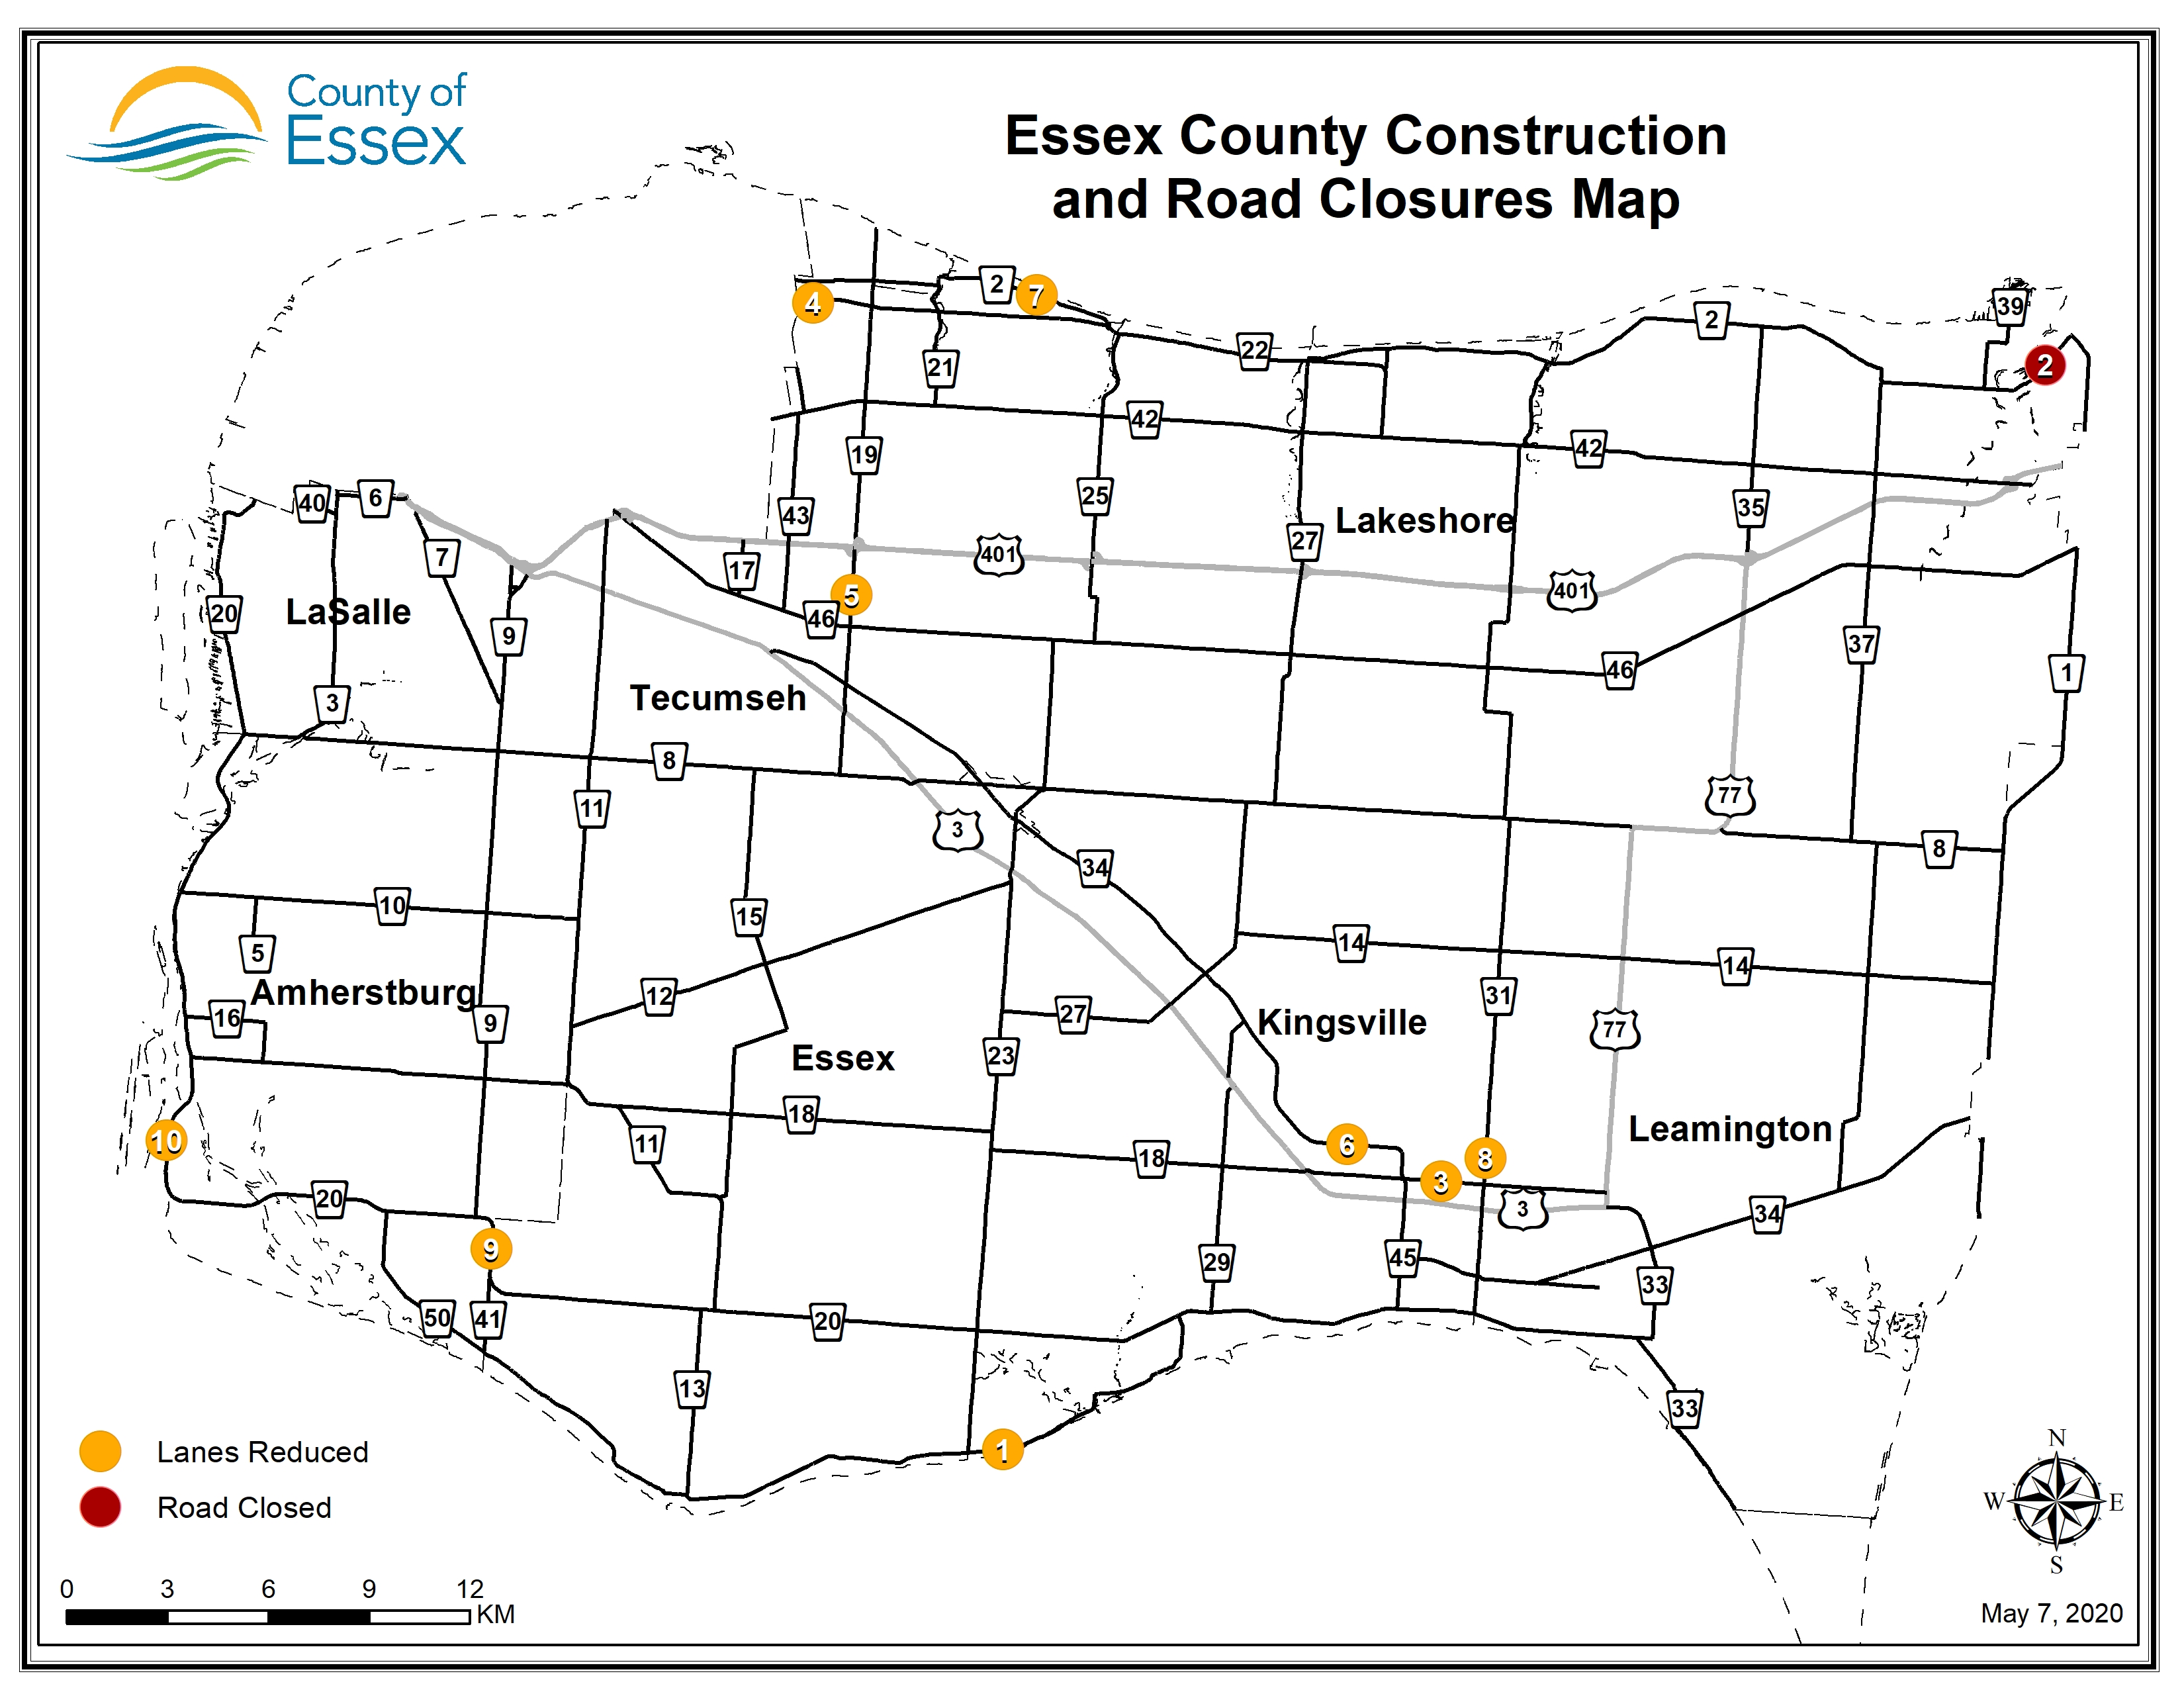 A map of Essex County showing road closures and lane restrictions for May 7, 2020